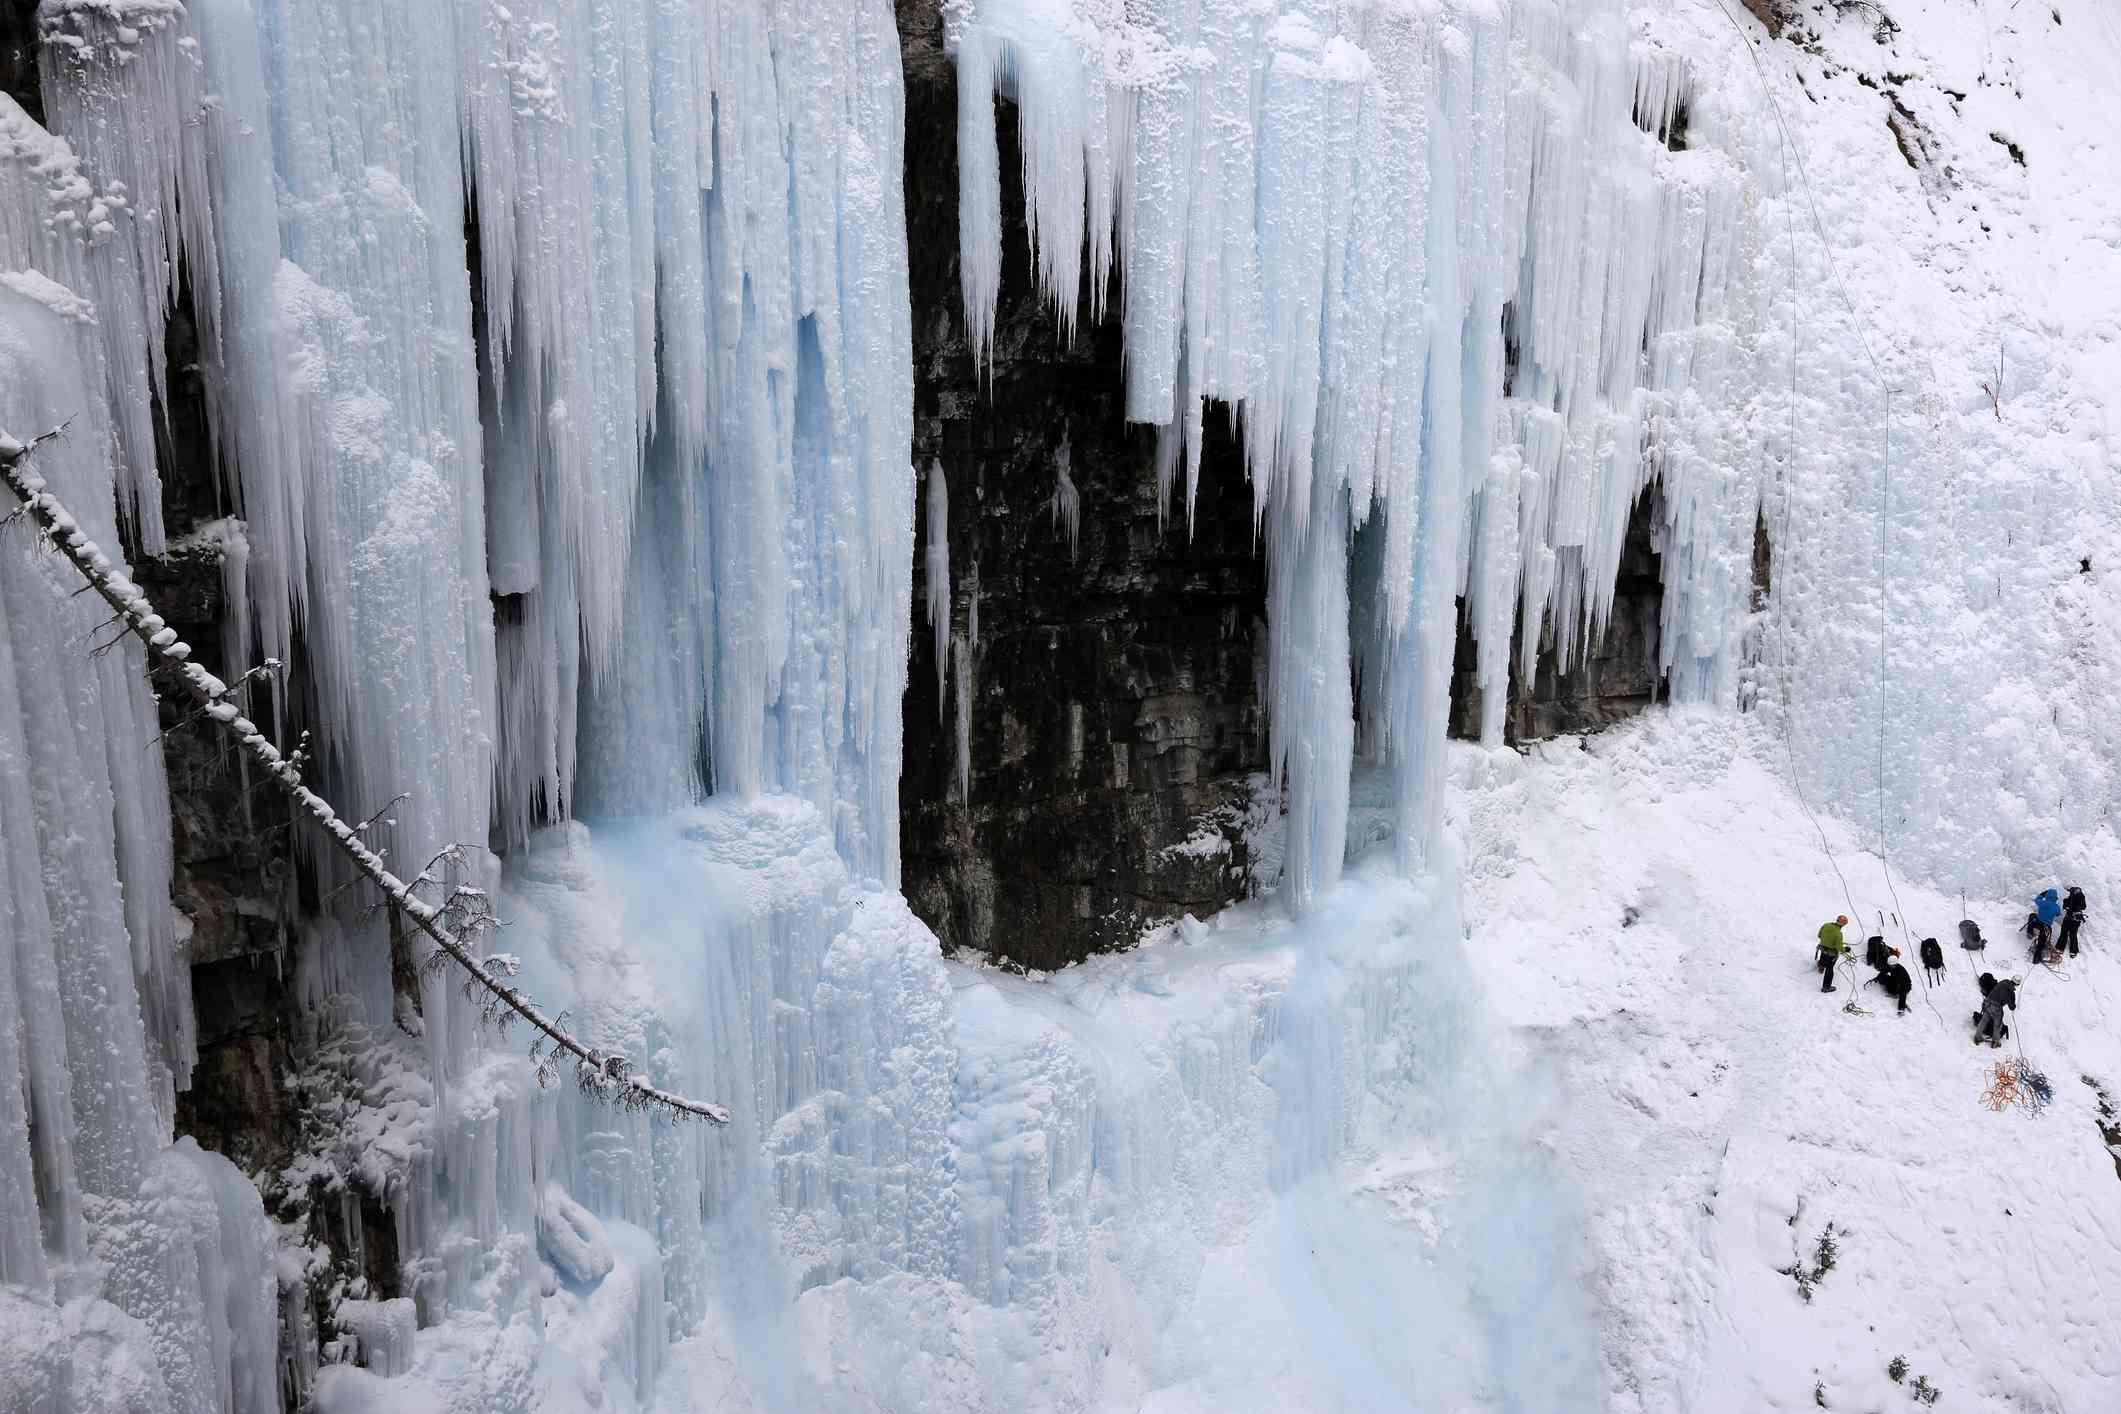 Ice climbers gathered at the base of frozen waterfalls